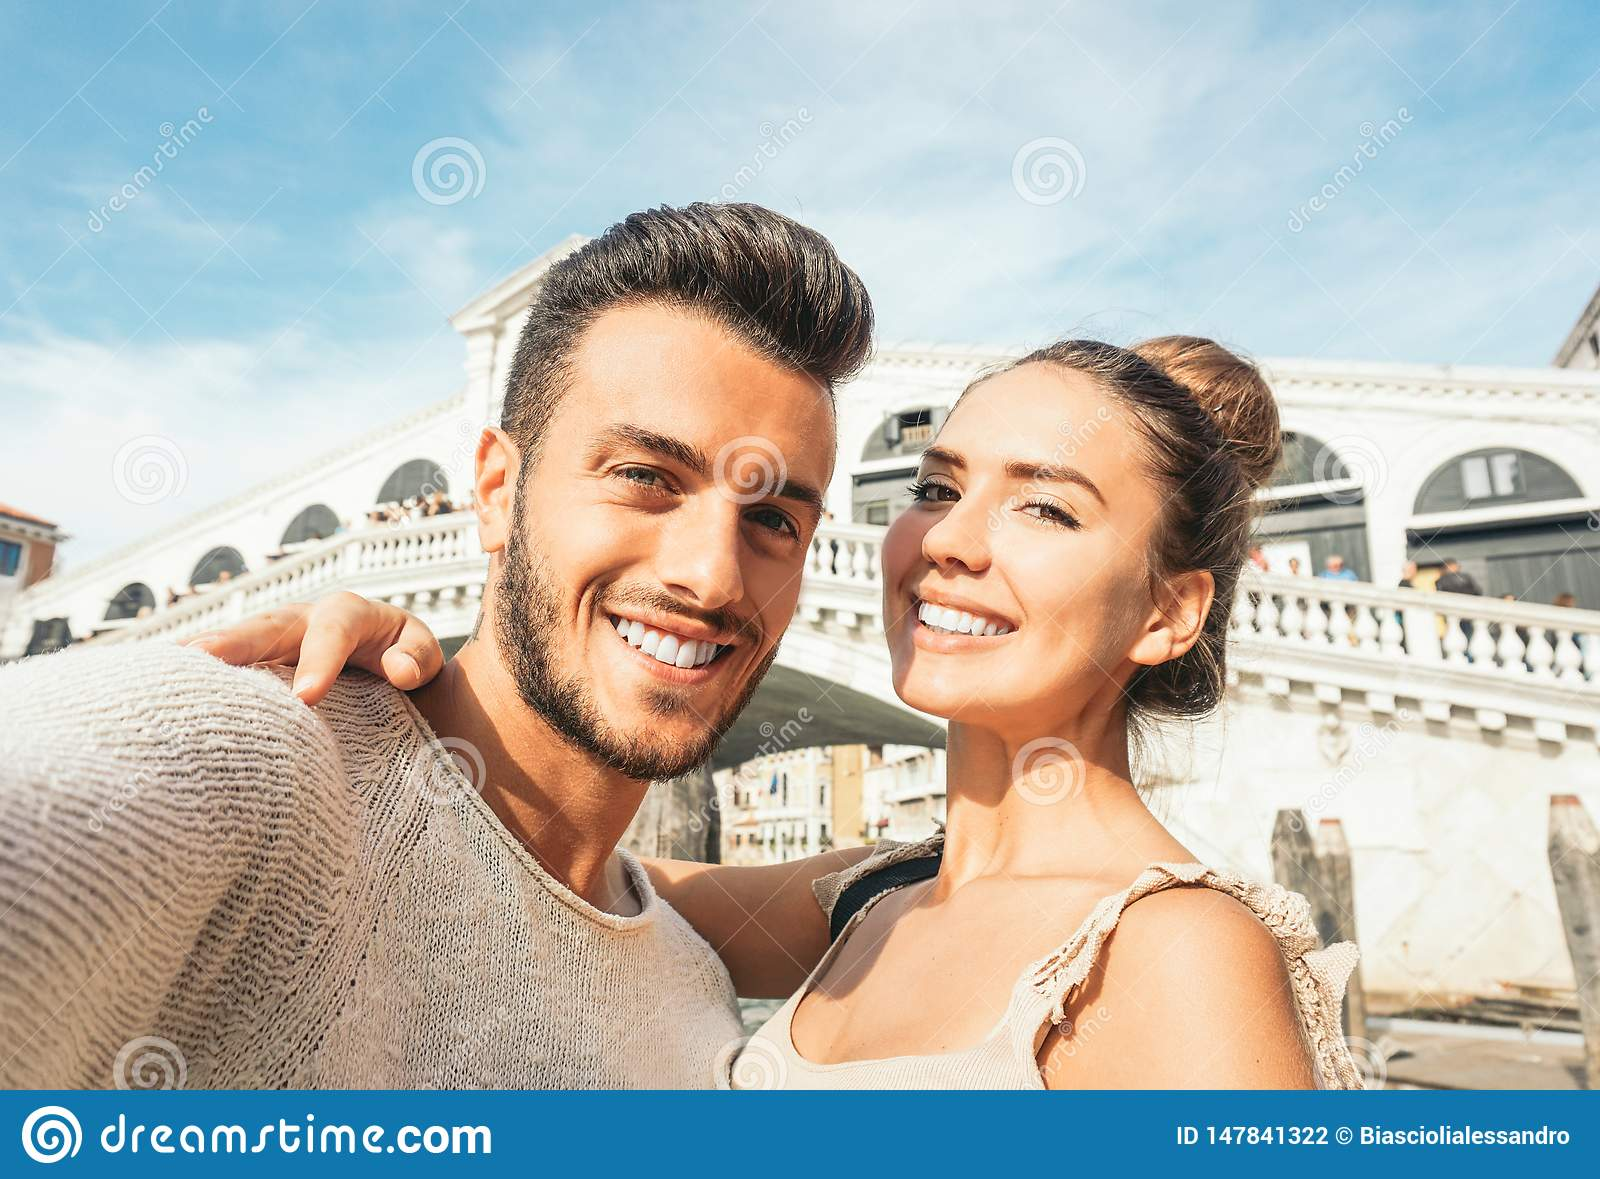 Beautiful young couple taking a selfie enjoying the time on their trip to Venice - Boyfriend and girlfriend taking a picture